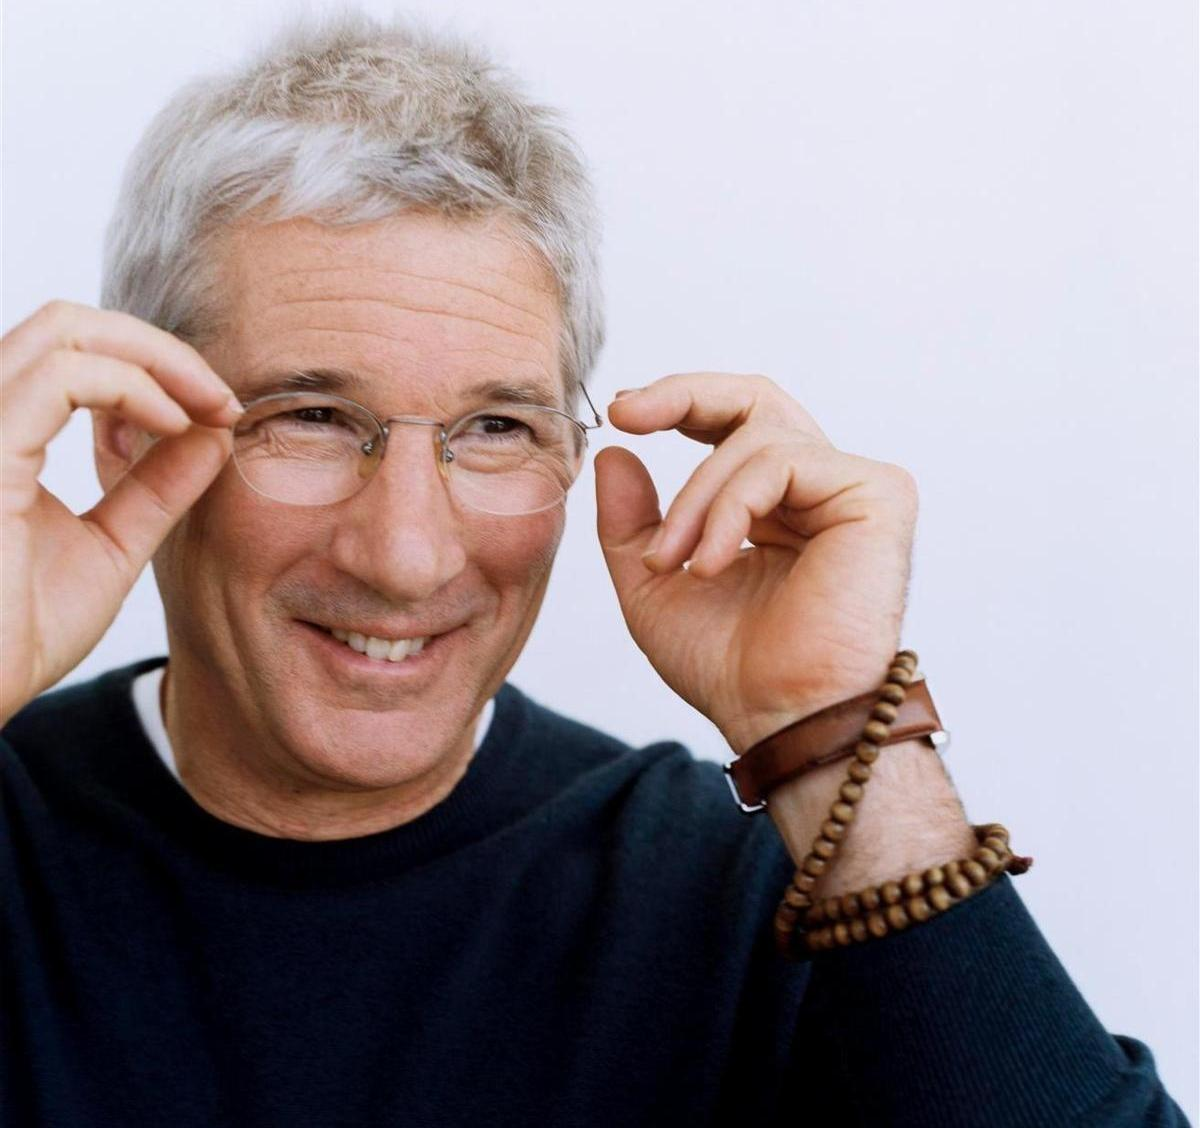 High Quality Richard Gere Wallpaper Full HD Pictures 1200x1128